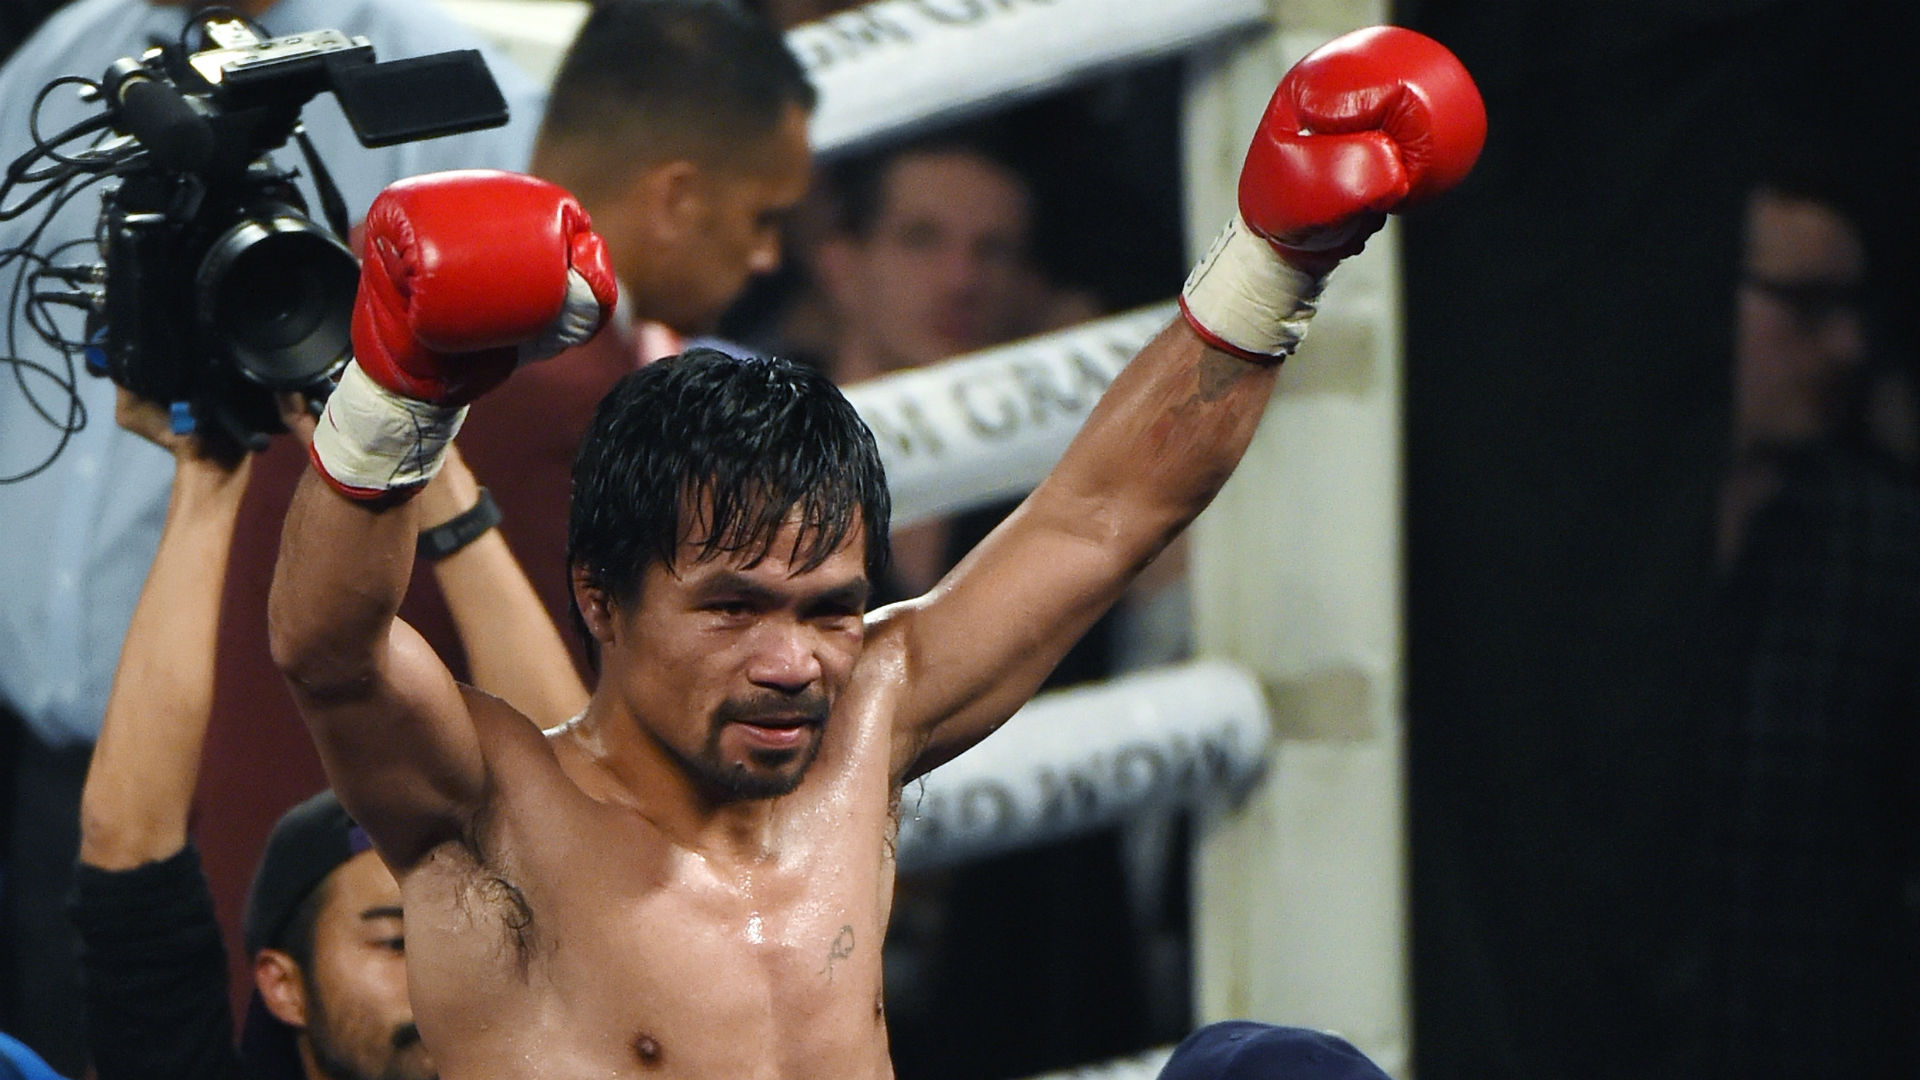 Manny Pacquiao: Rematch with Floyd Mayweather would be 'exciting'